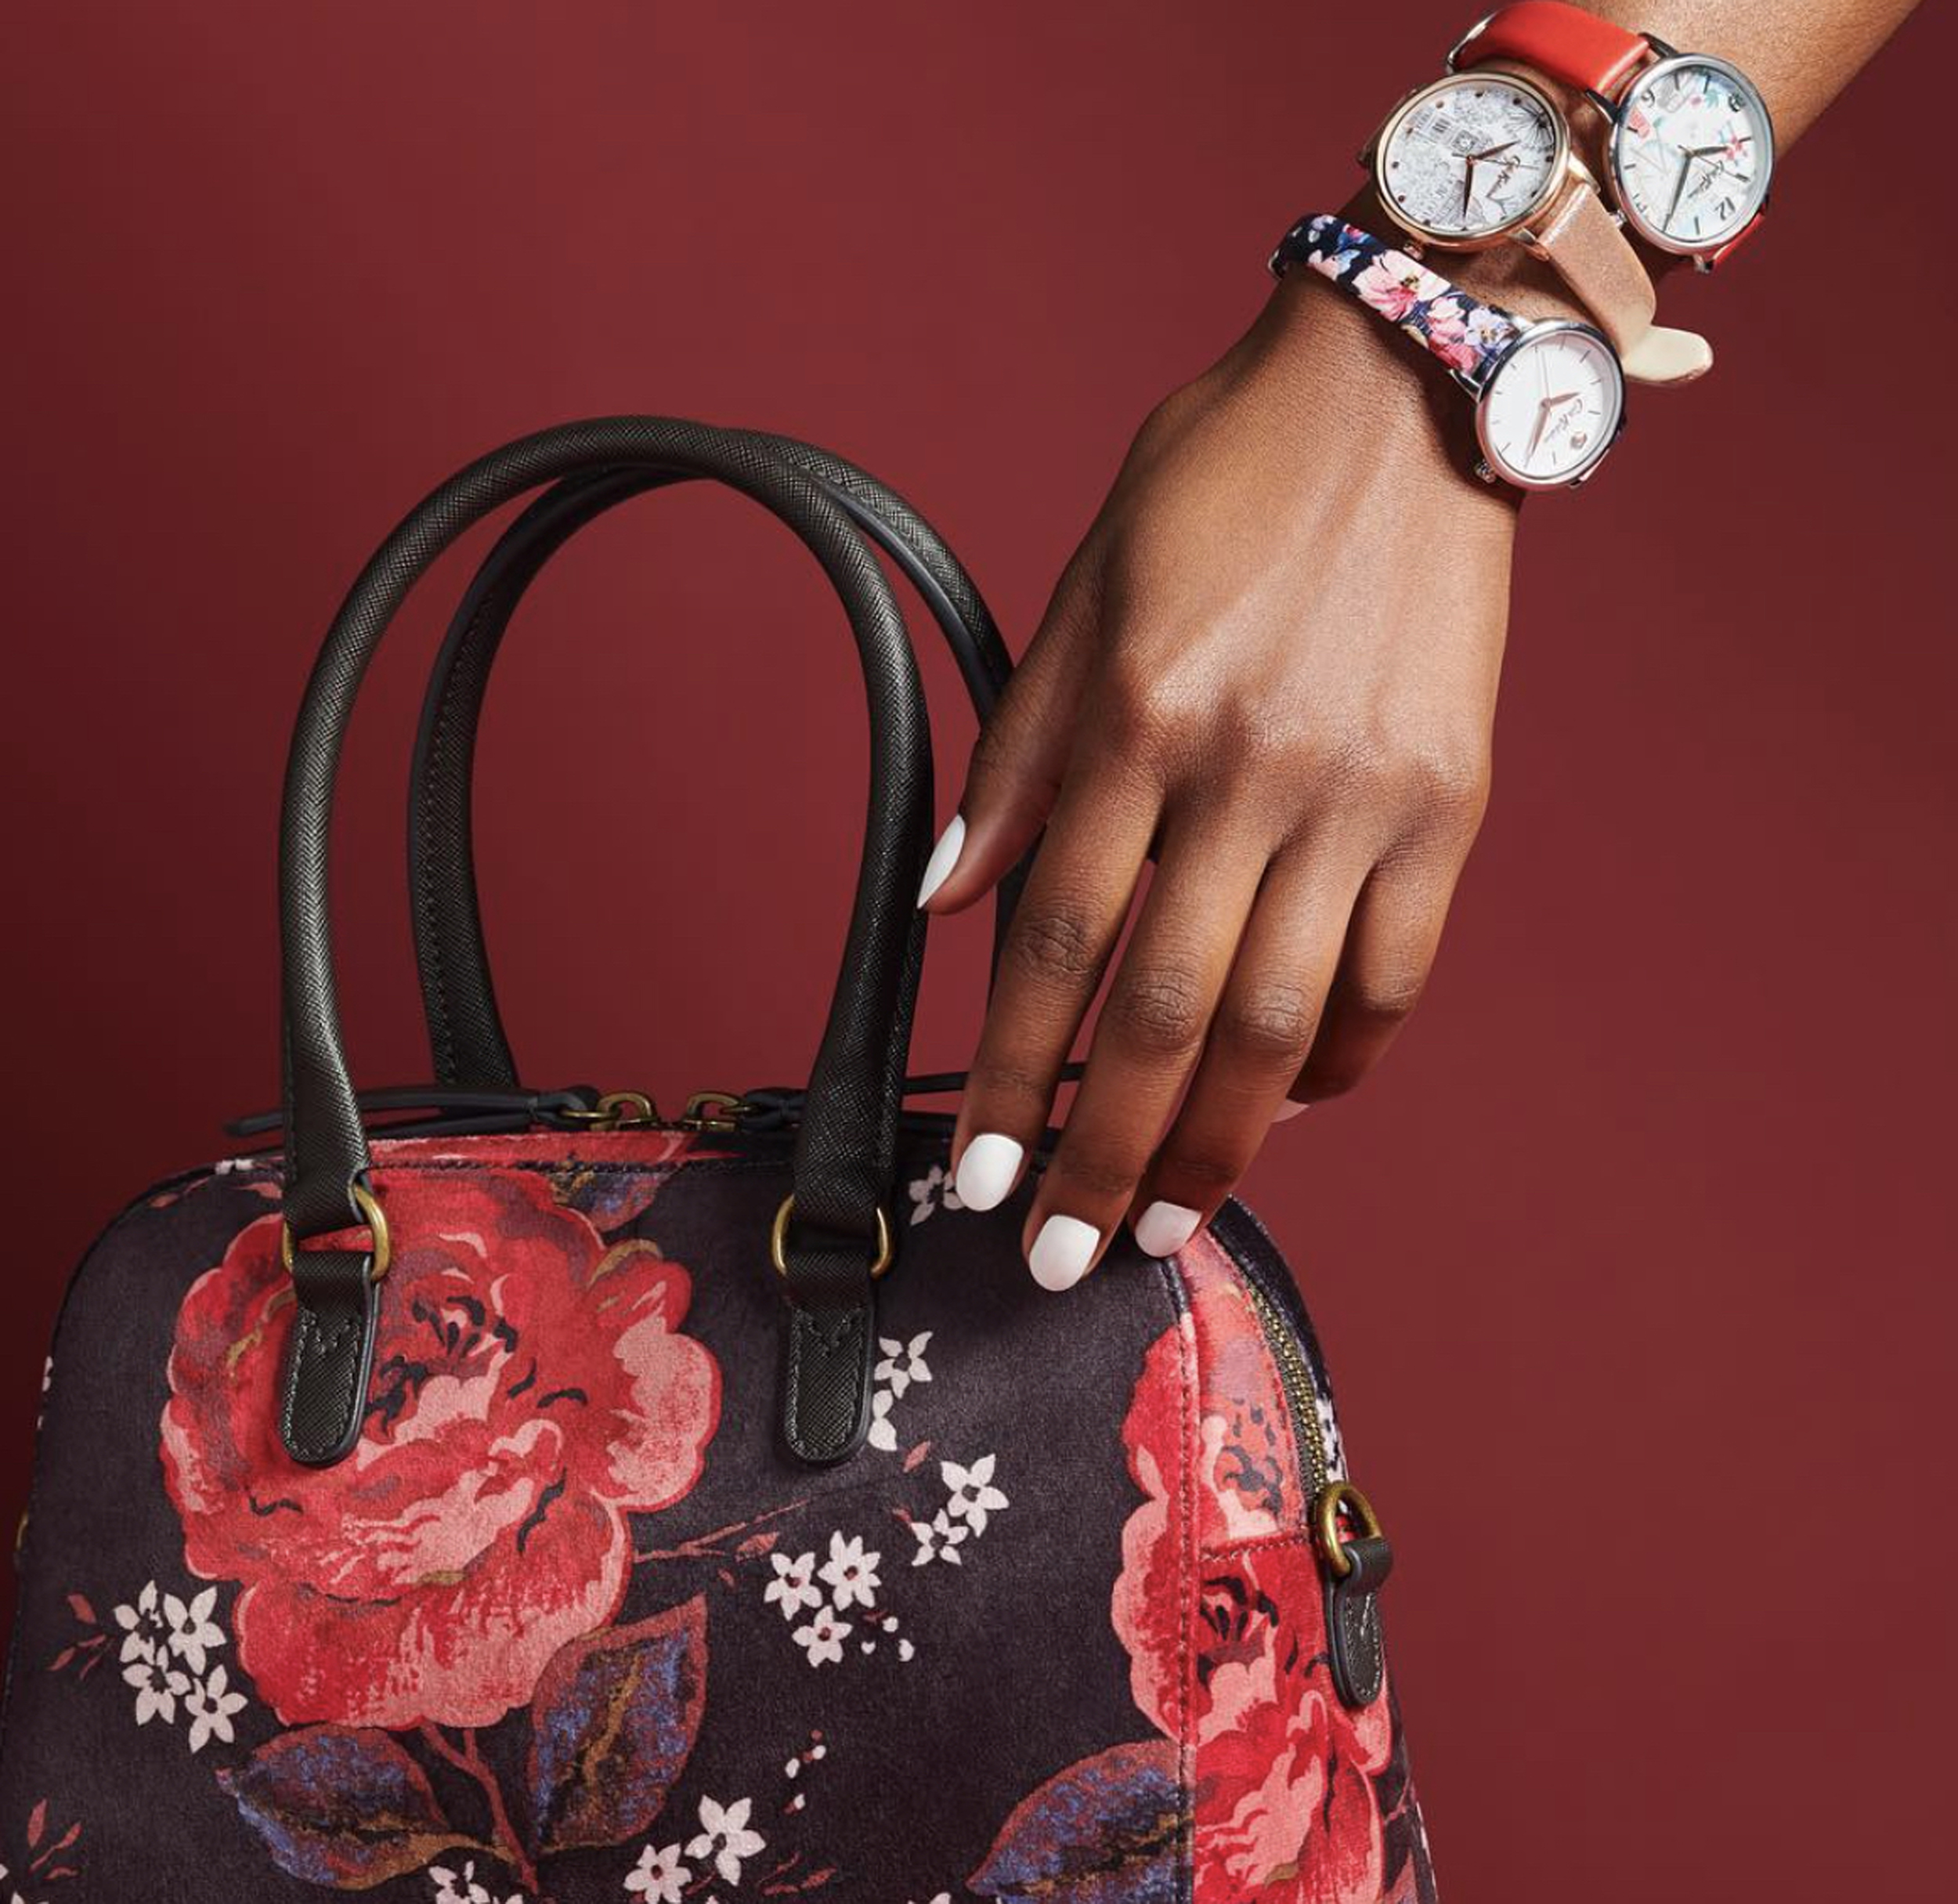 wrist with three Cath Kidston watches and a floral handbag